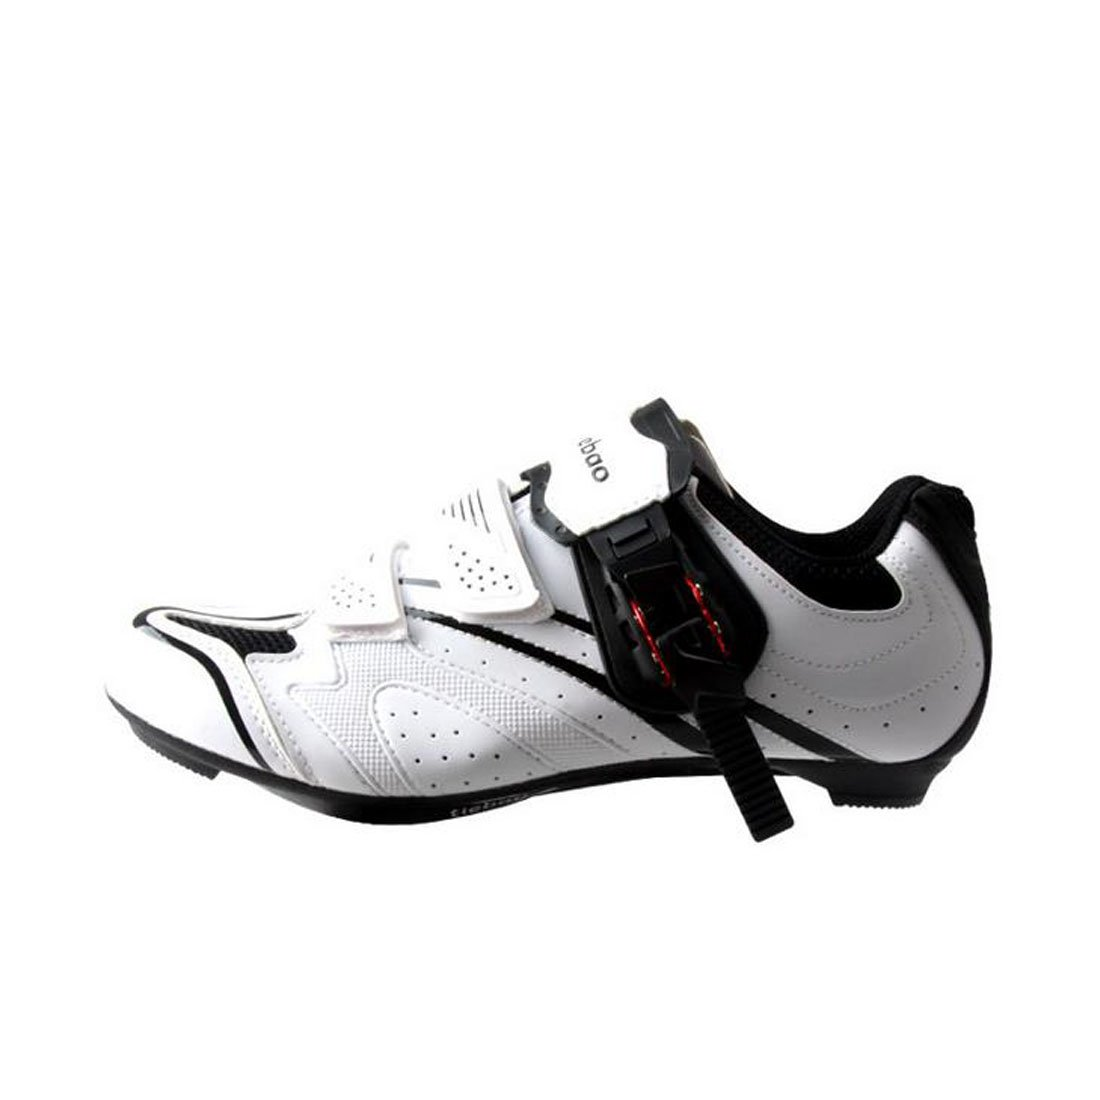 Amazon.com | Yitaotaous Mens Road Bike Shoes Indoor and Outdoor Cycling Shoes White AUTO Lock Shoes | Cycling